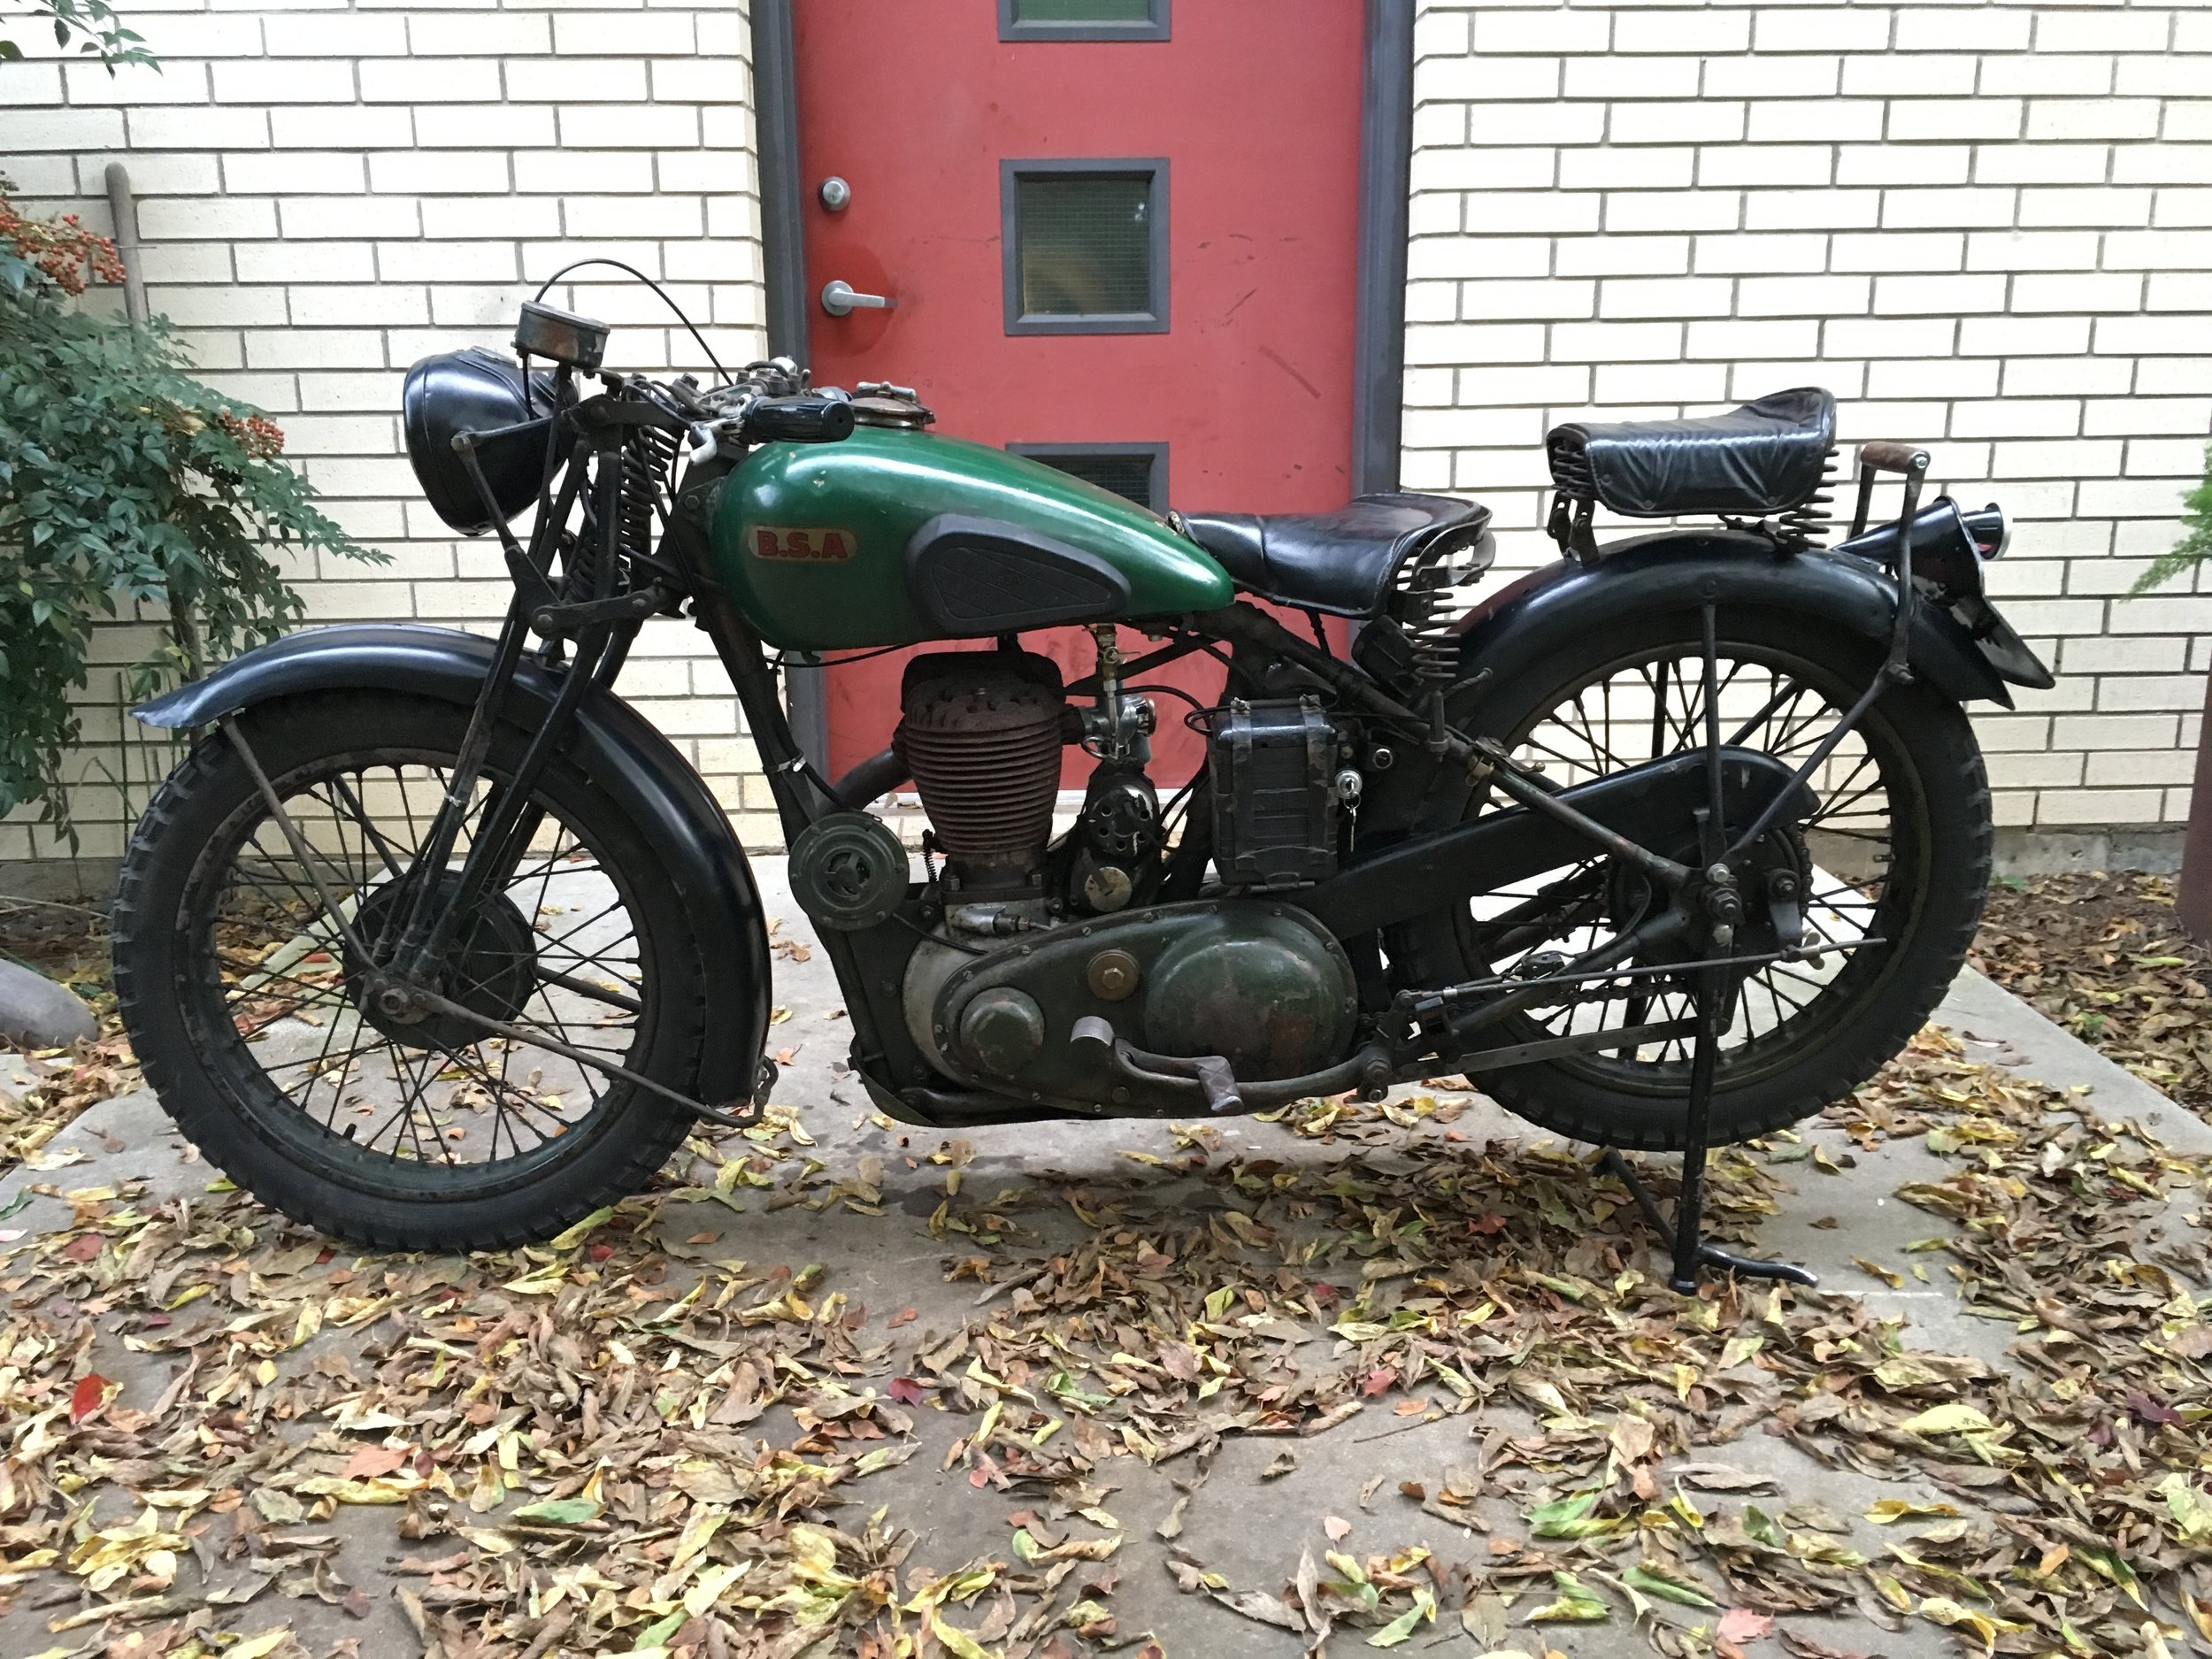 Custom tail light and license plate bracket, rear grab bar, kickstand lever, sorted electrics, new carb, gas leaks fixed, and an engine revival, and she is ready for riding again.